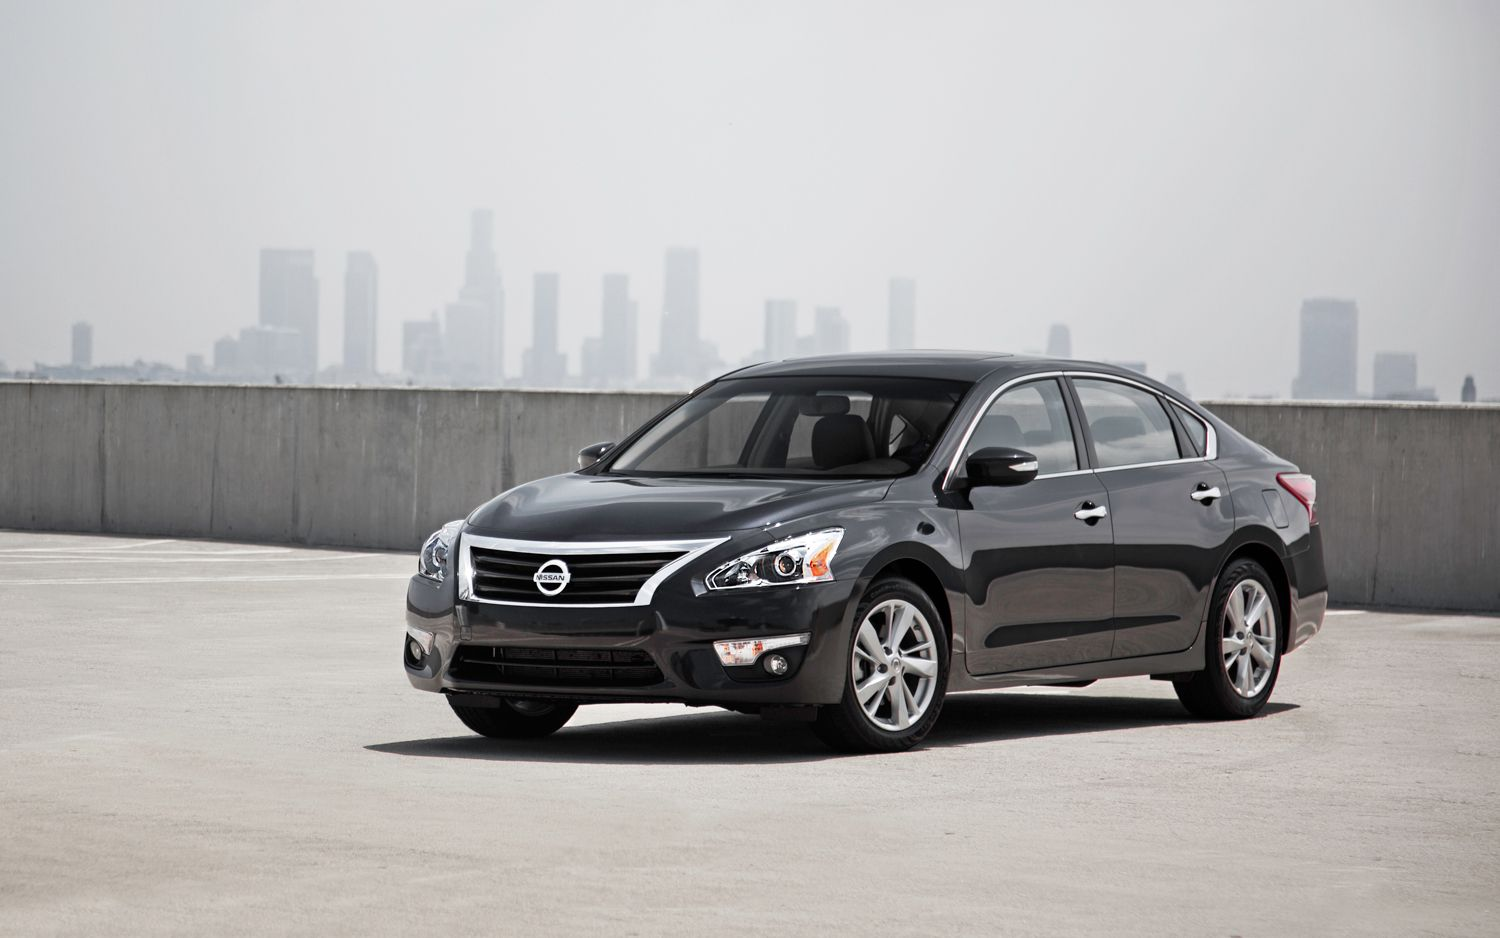 2013 Nissan Altima SL Front Three Quarters1